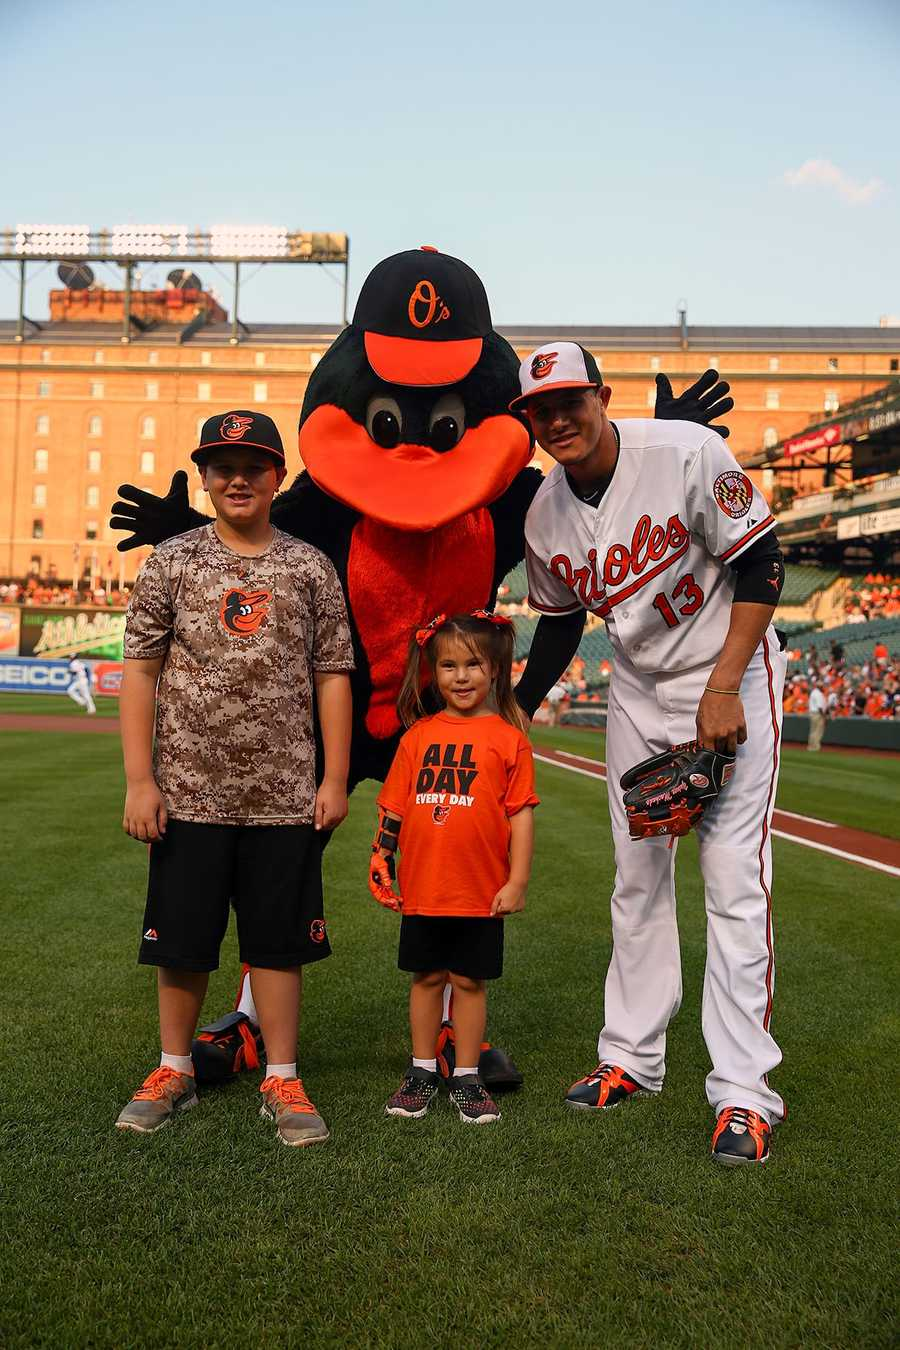 Hailey Dawson, 5, of Las Vegas is joined by the Oriole Bird and third baseman Manny Machado on the day she threw out the first pitch thanks to a robotic hand.